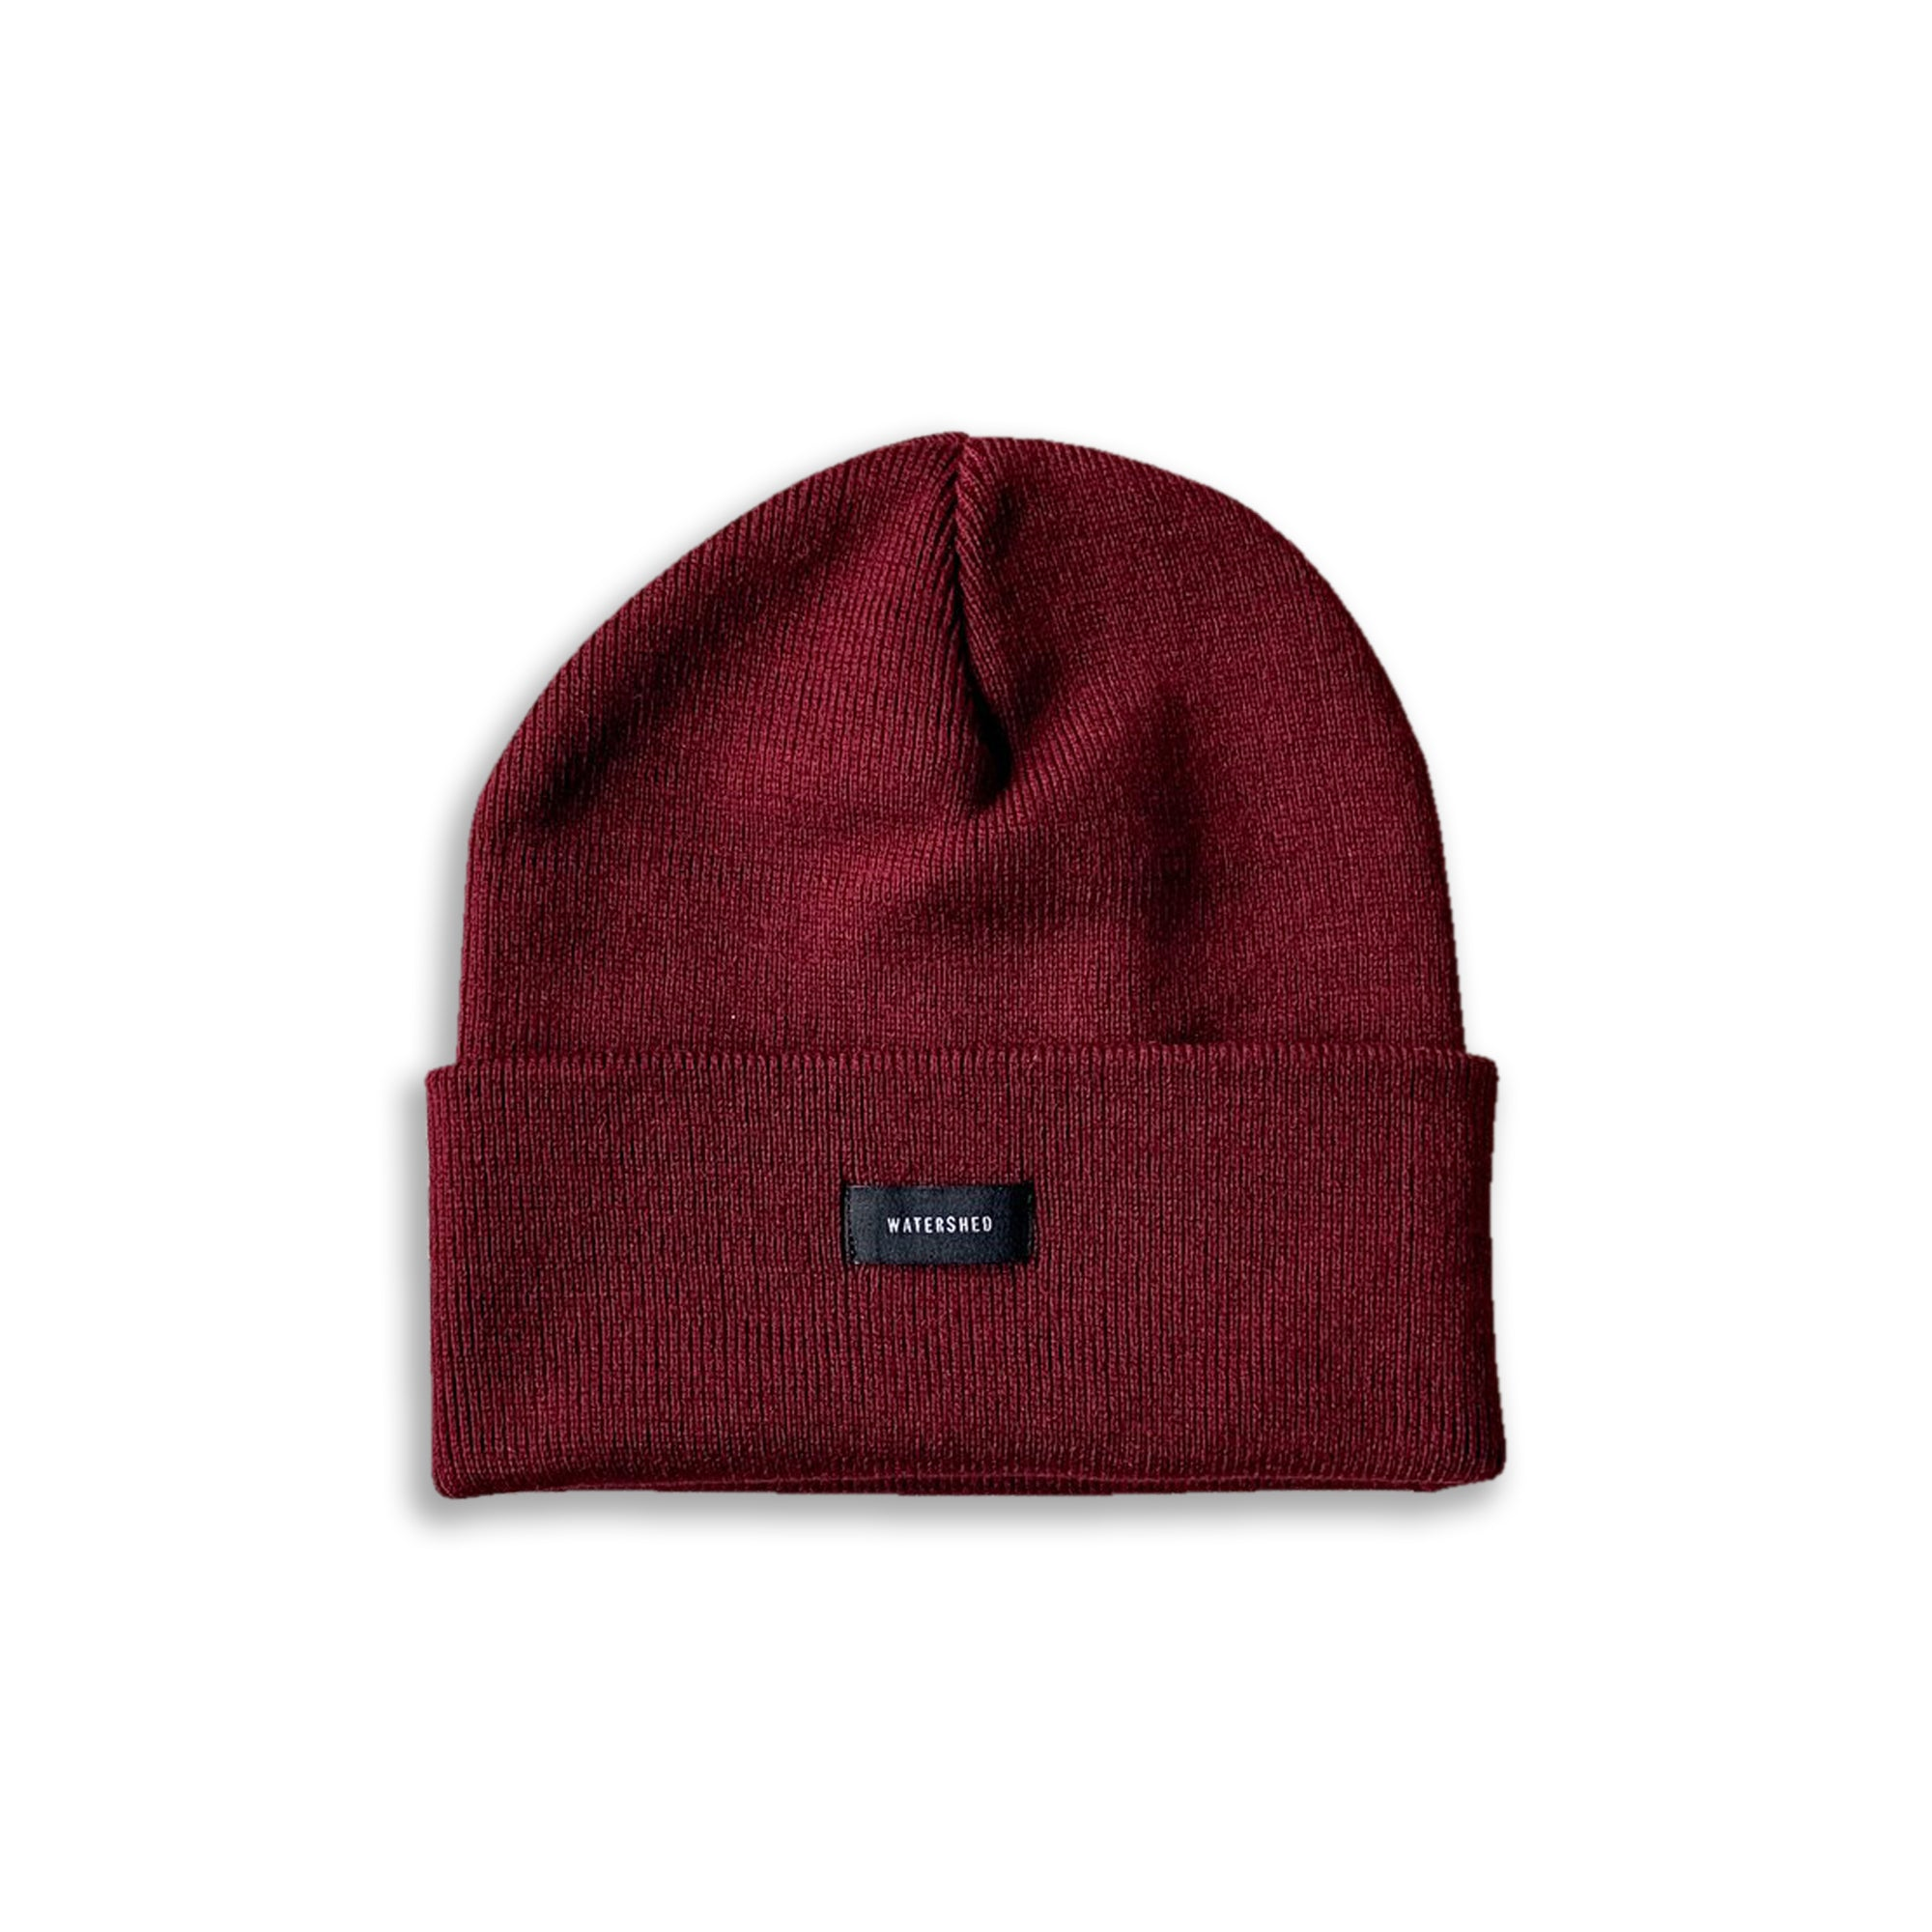 Watershed Standard Issue Beanie - Burgundy